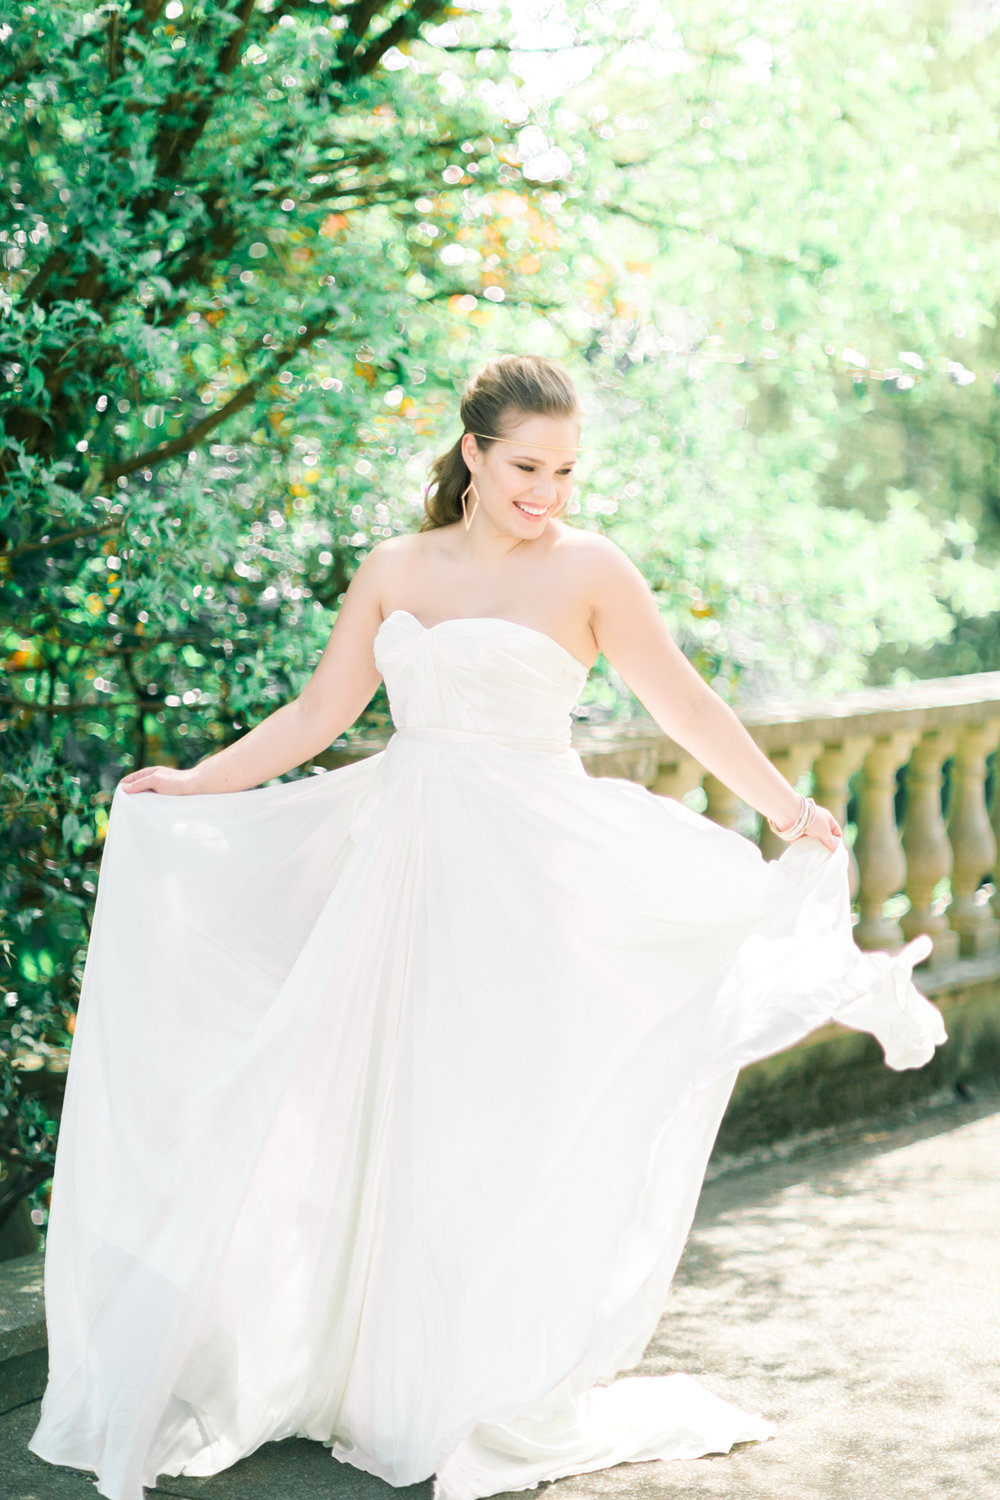 wedding dress stylist-personal shopping-charlotte munro-sanshine photography.jpg